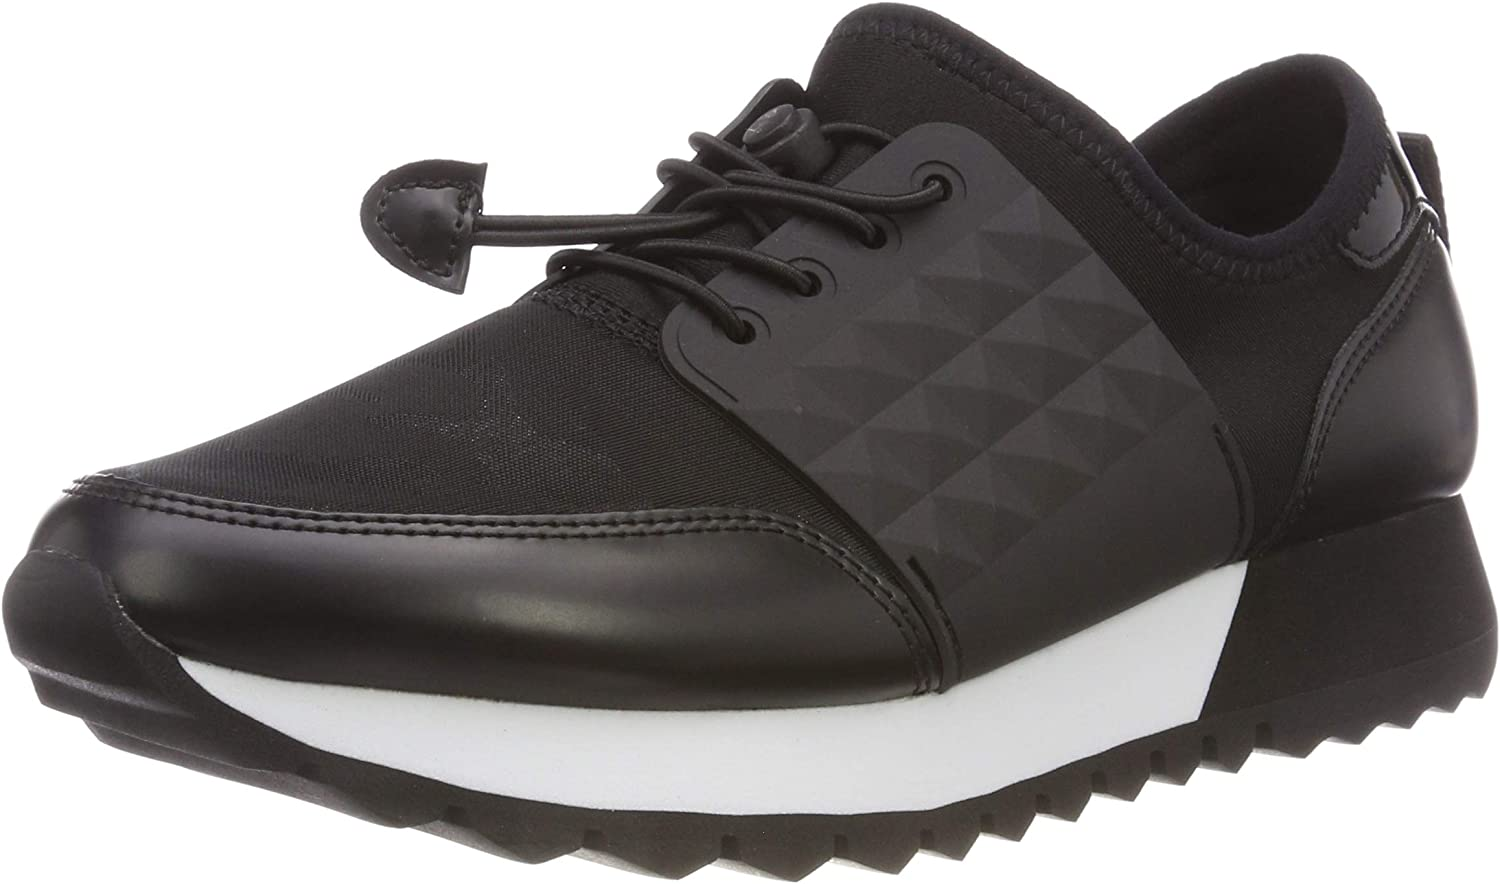 S.Oliver Women's 5-5-23613-21 098 Low-Top Sneakers